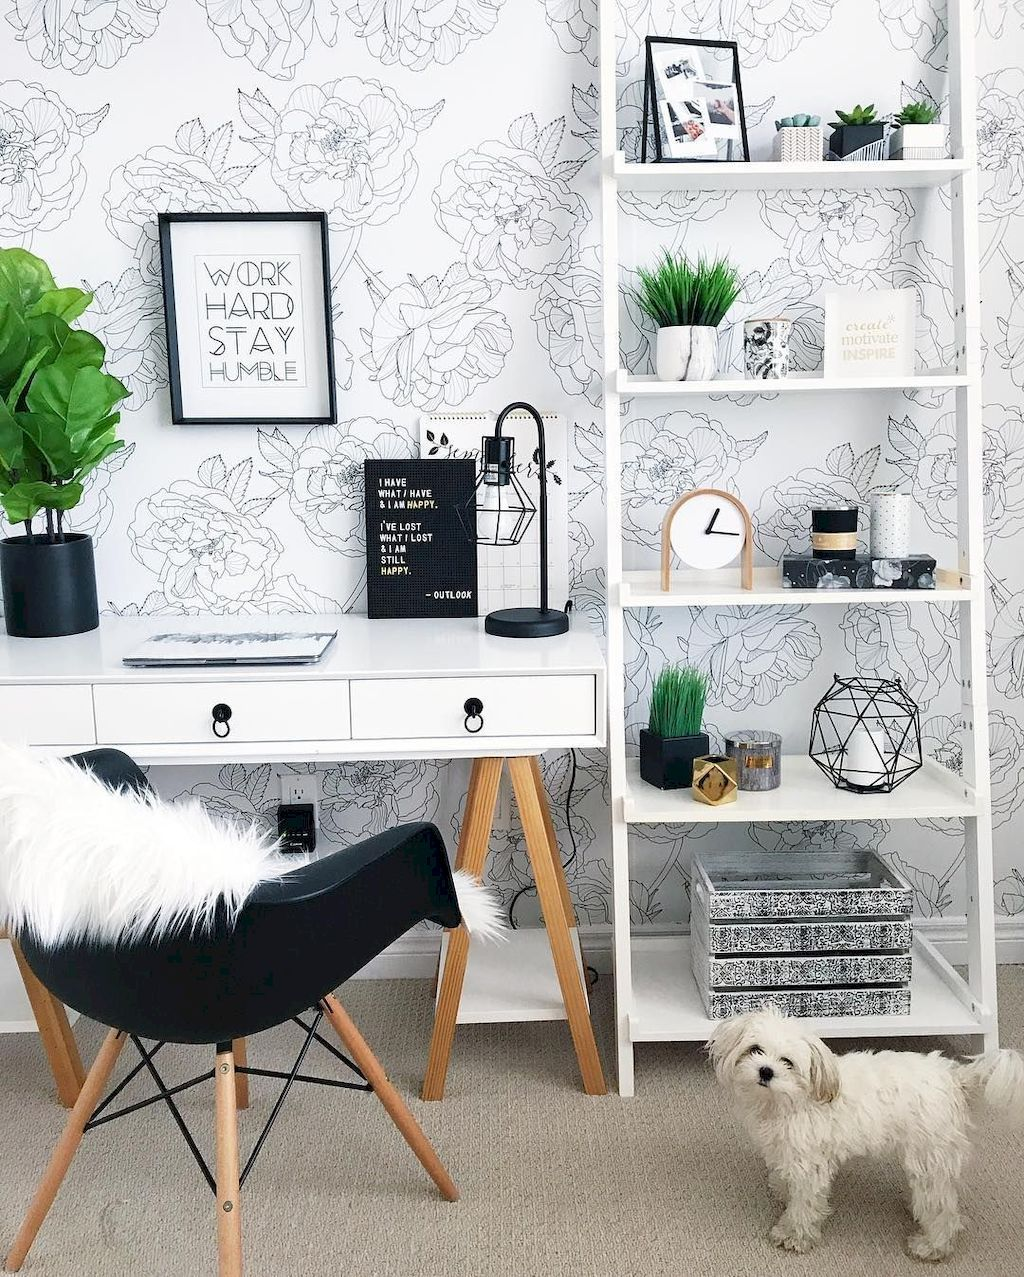 d0c4a292e4139df2c613ab4b686703c0 - 11+ Small Home Office Design Concepts  Images